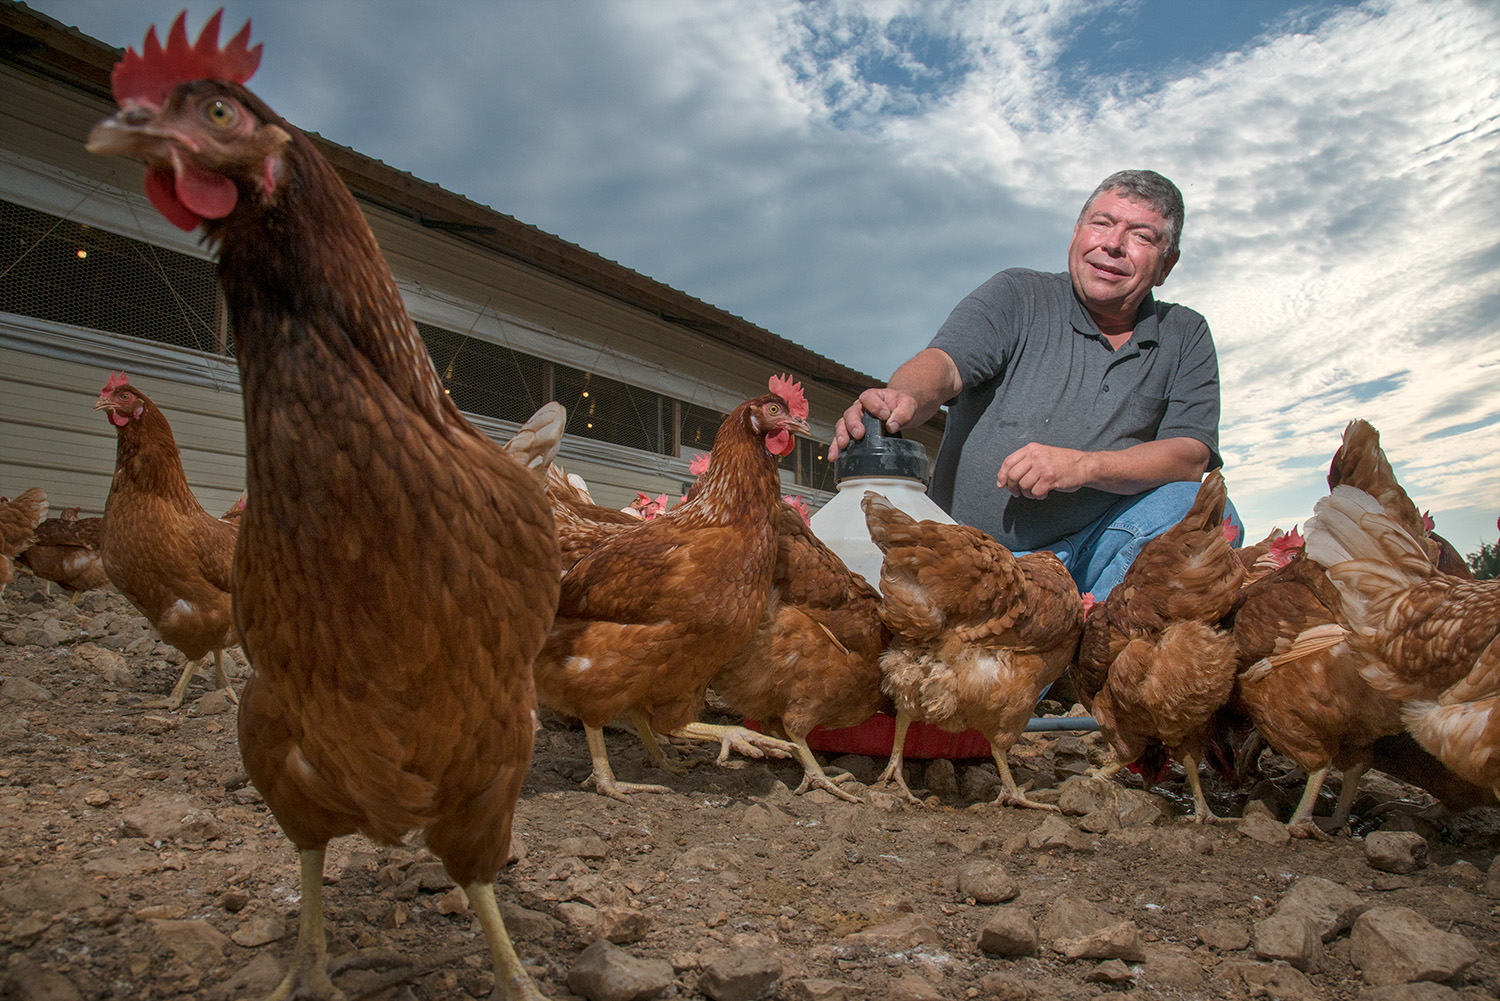 chickens in portrait with farmer Portraits